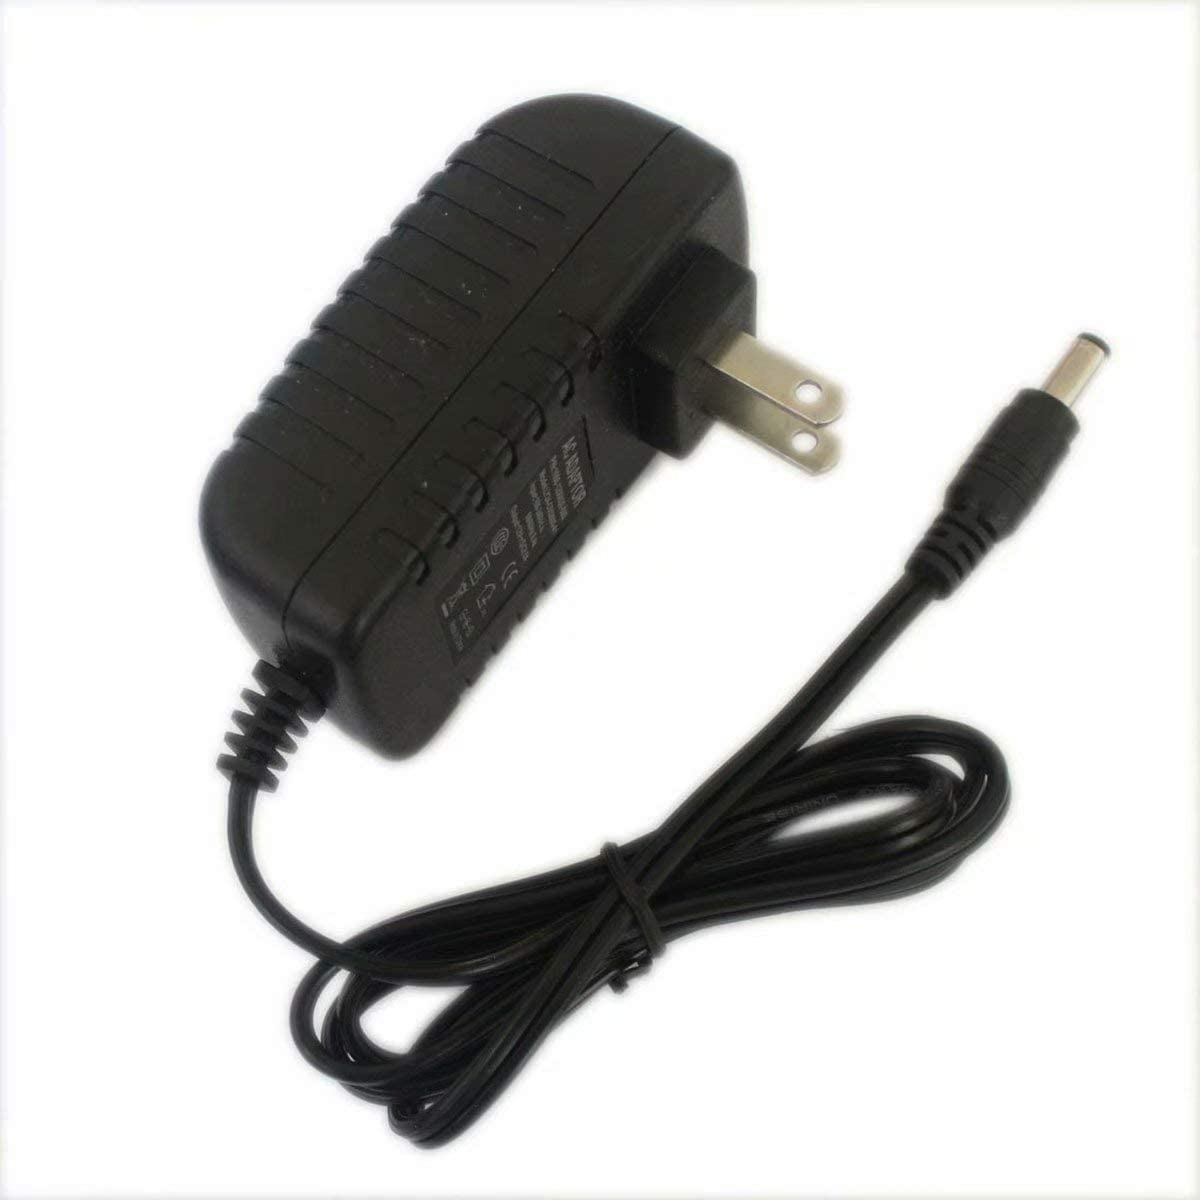 AC Adapter for Westell Model 7500 6100 G A90 B90 C90 D90 G90 Series Modem Router